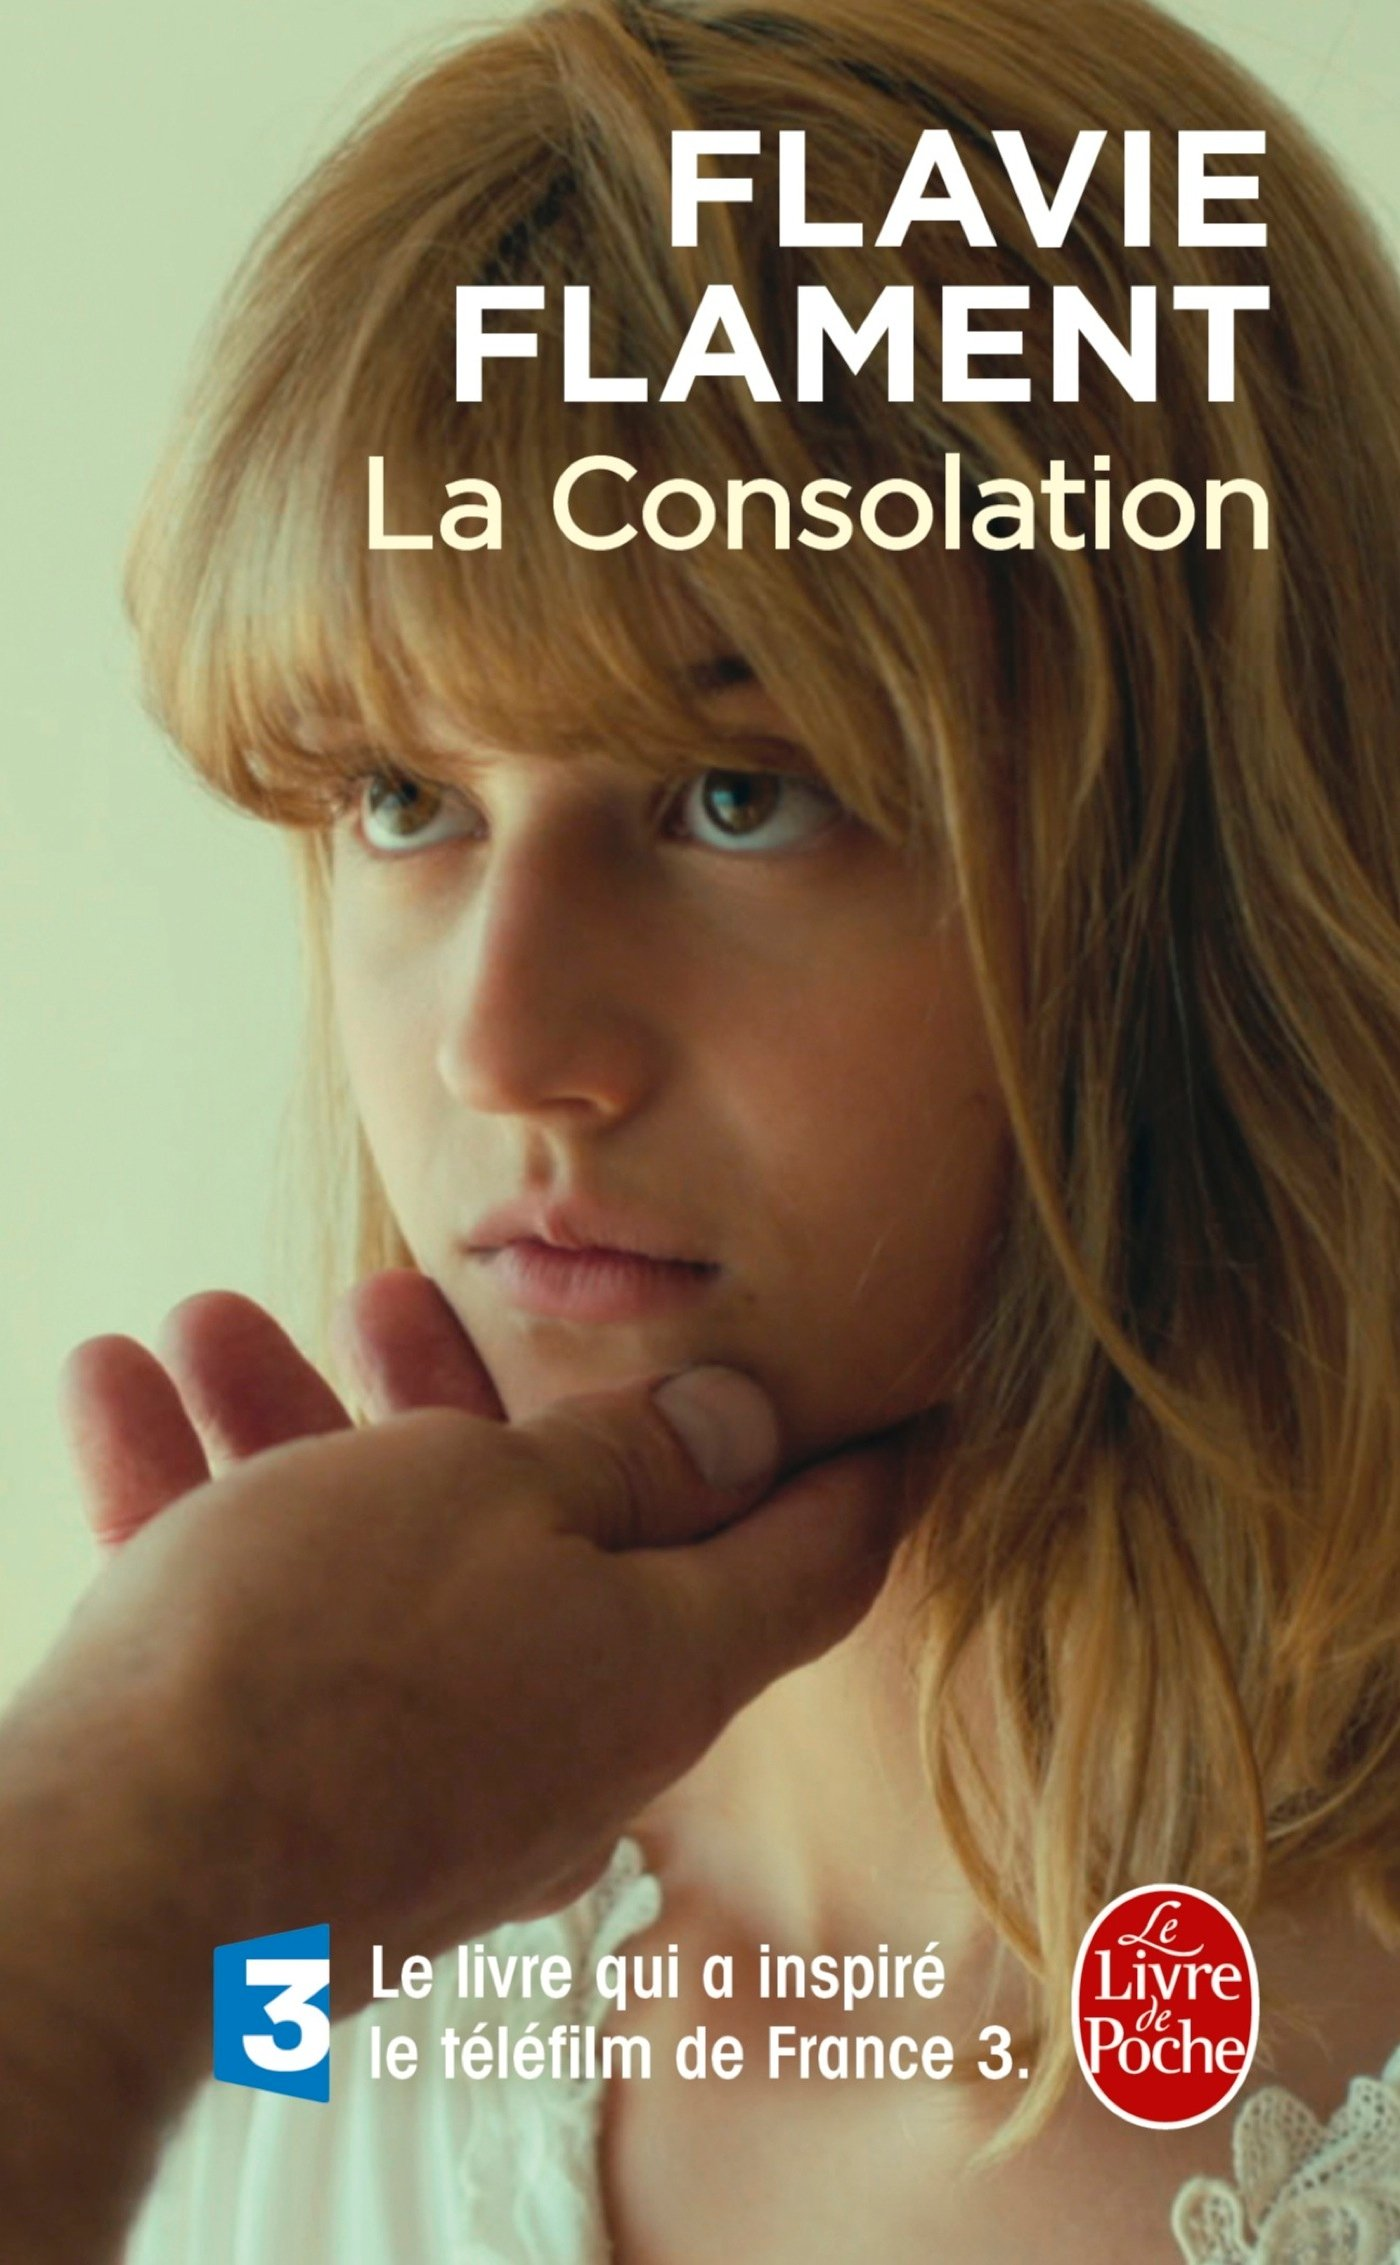 la consolation flavie flament film